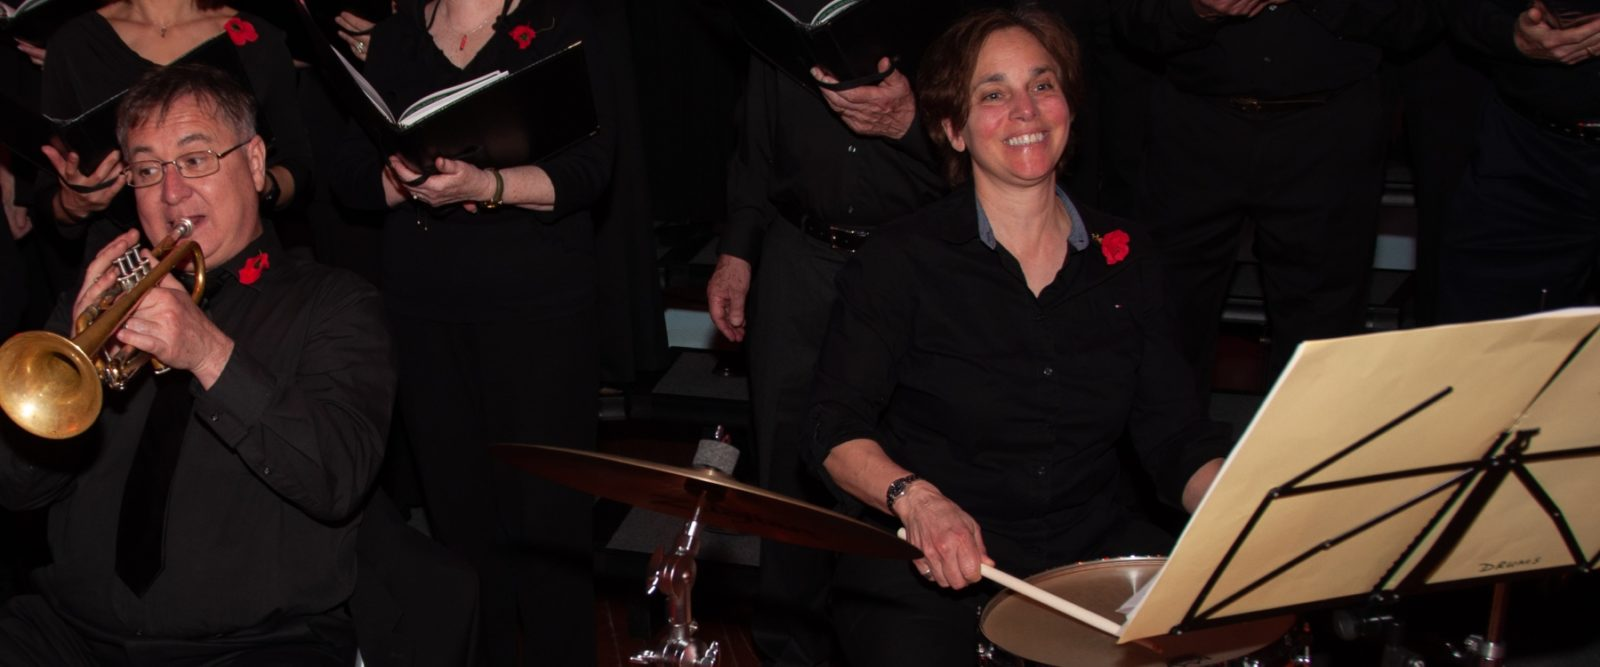 Carolyn Castellano, percussionist